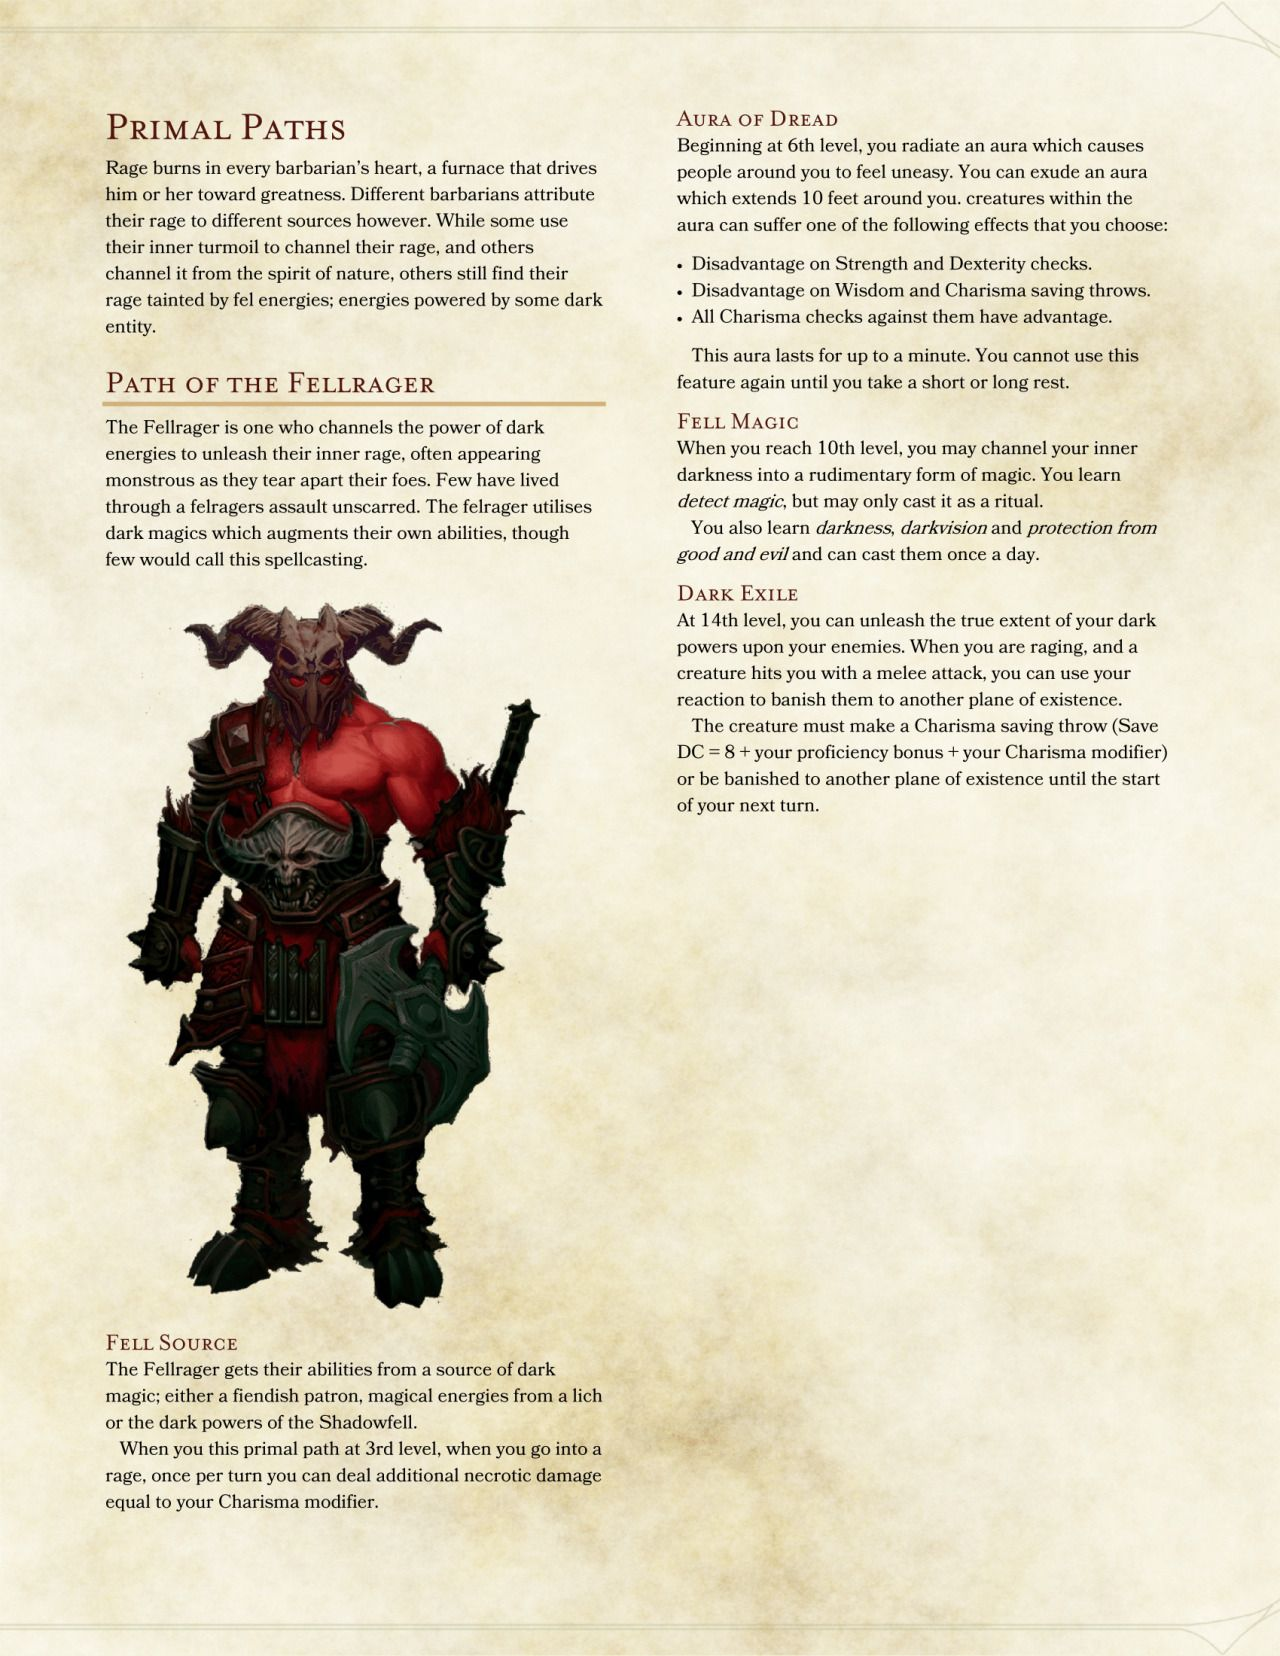 Dnd 5e Homebrew Of Bloodied Fist Monk - Year of Clean Water